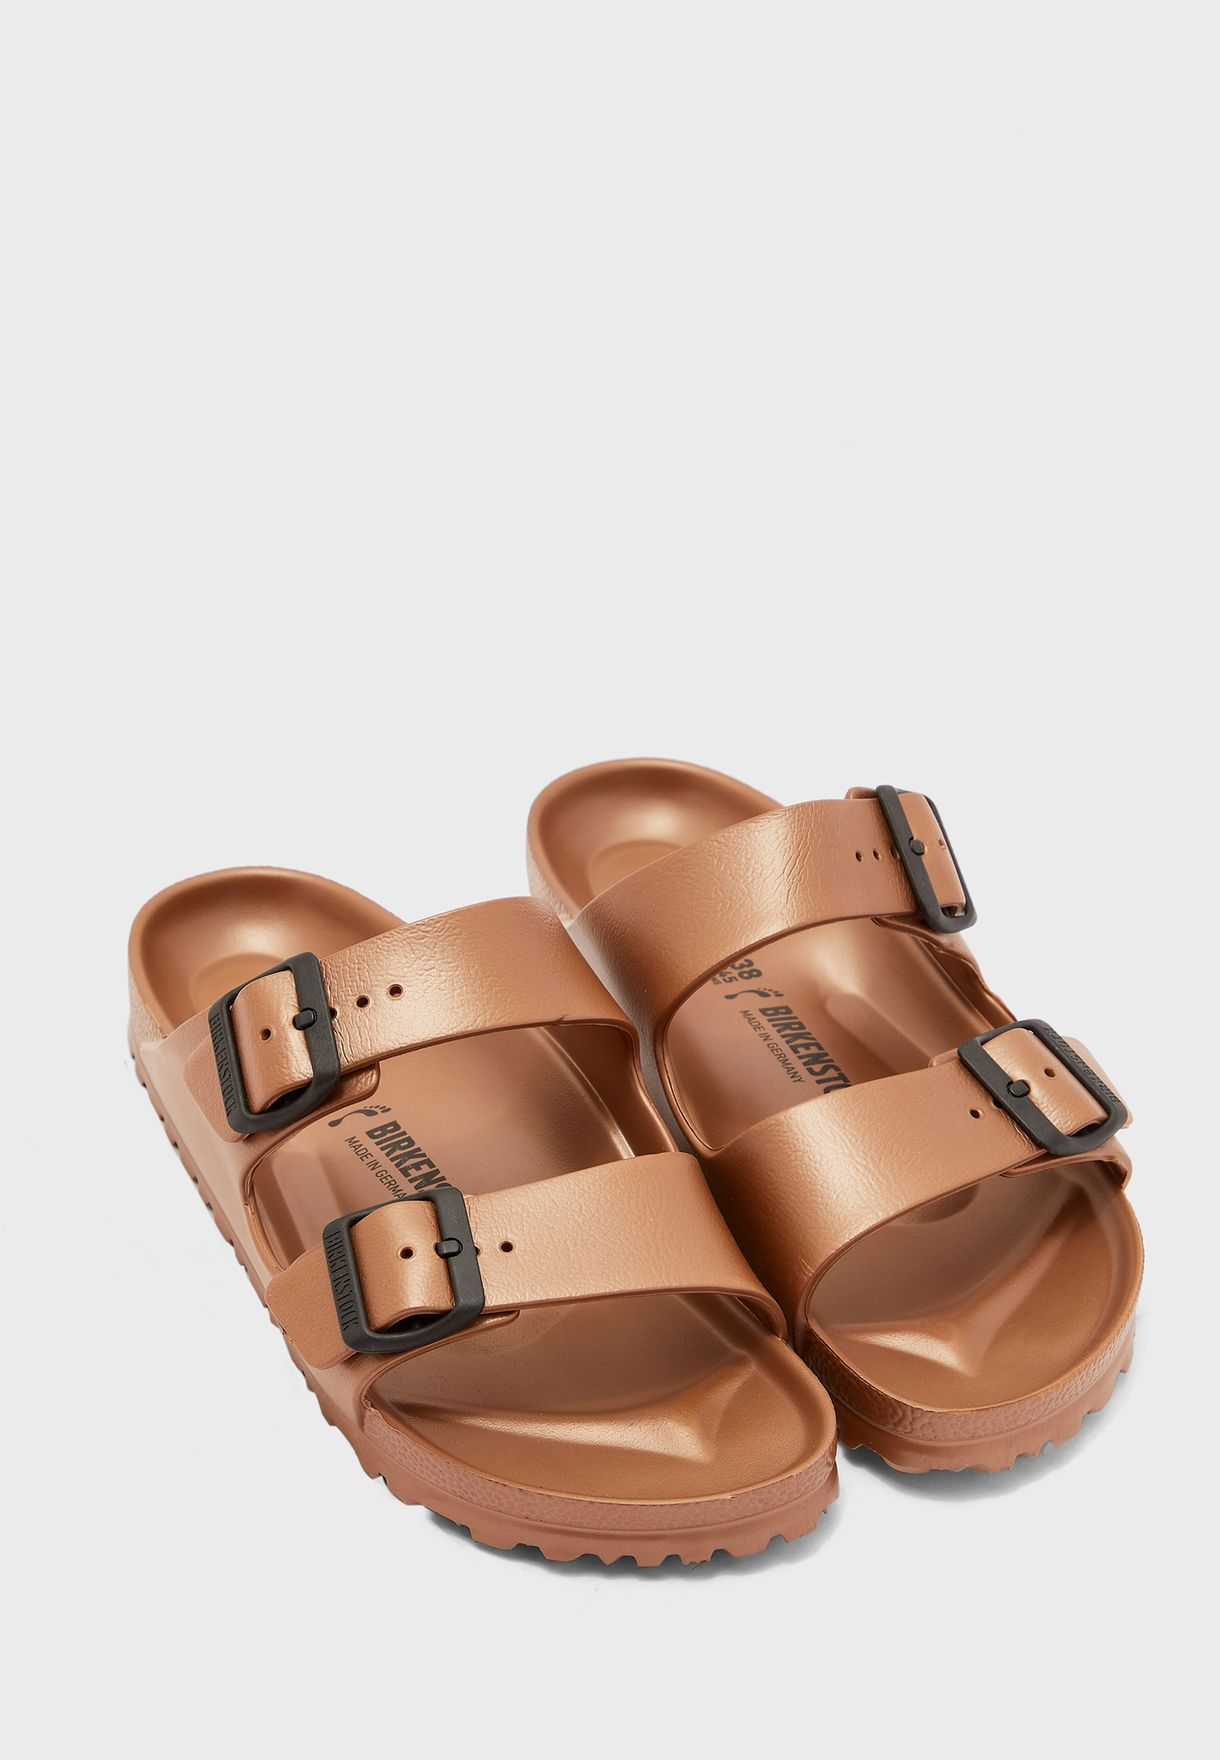 Two Strap Buckled Sandals